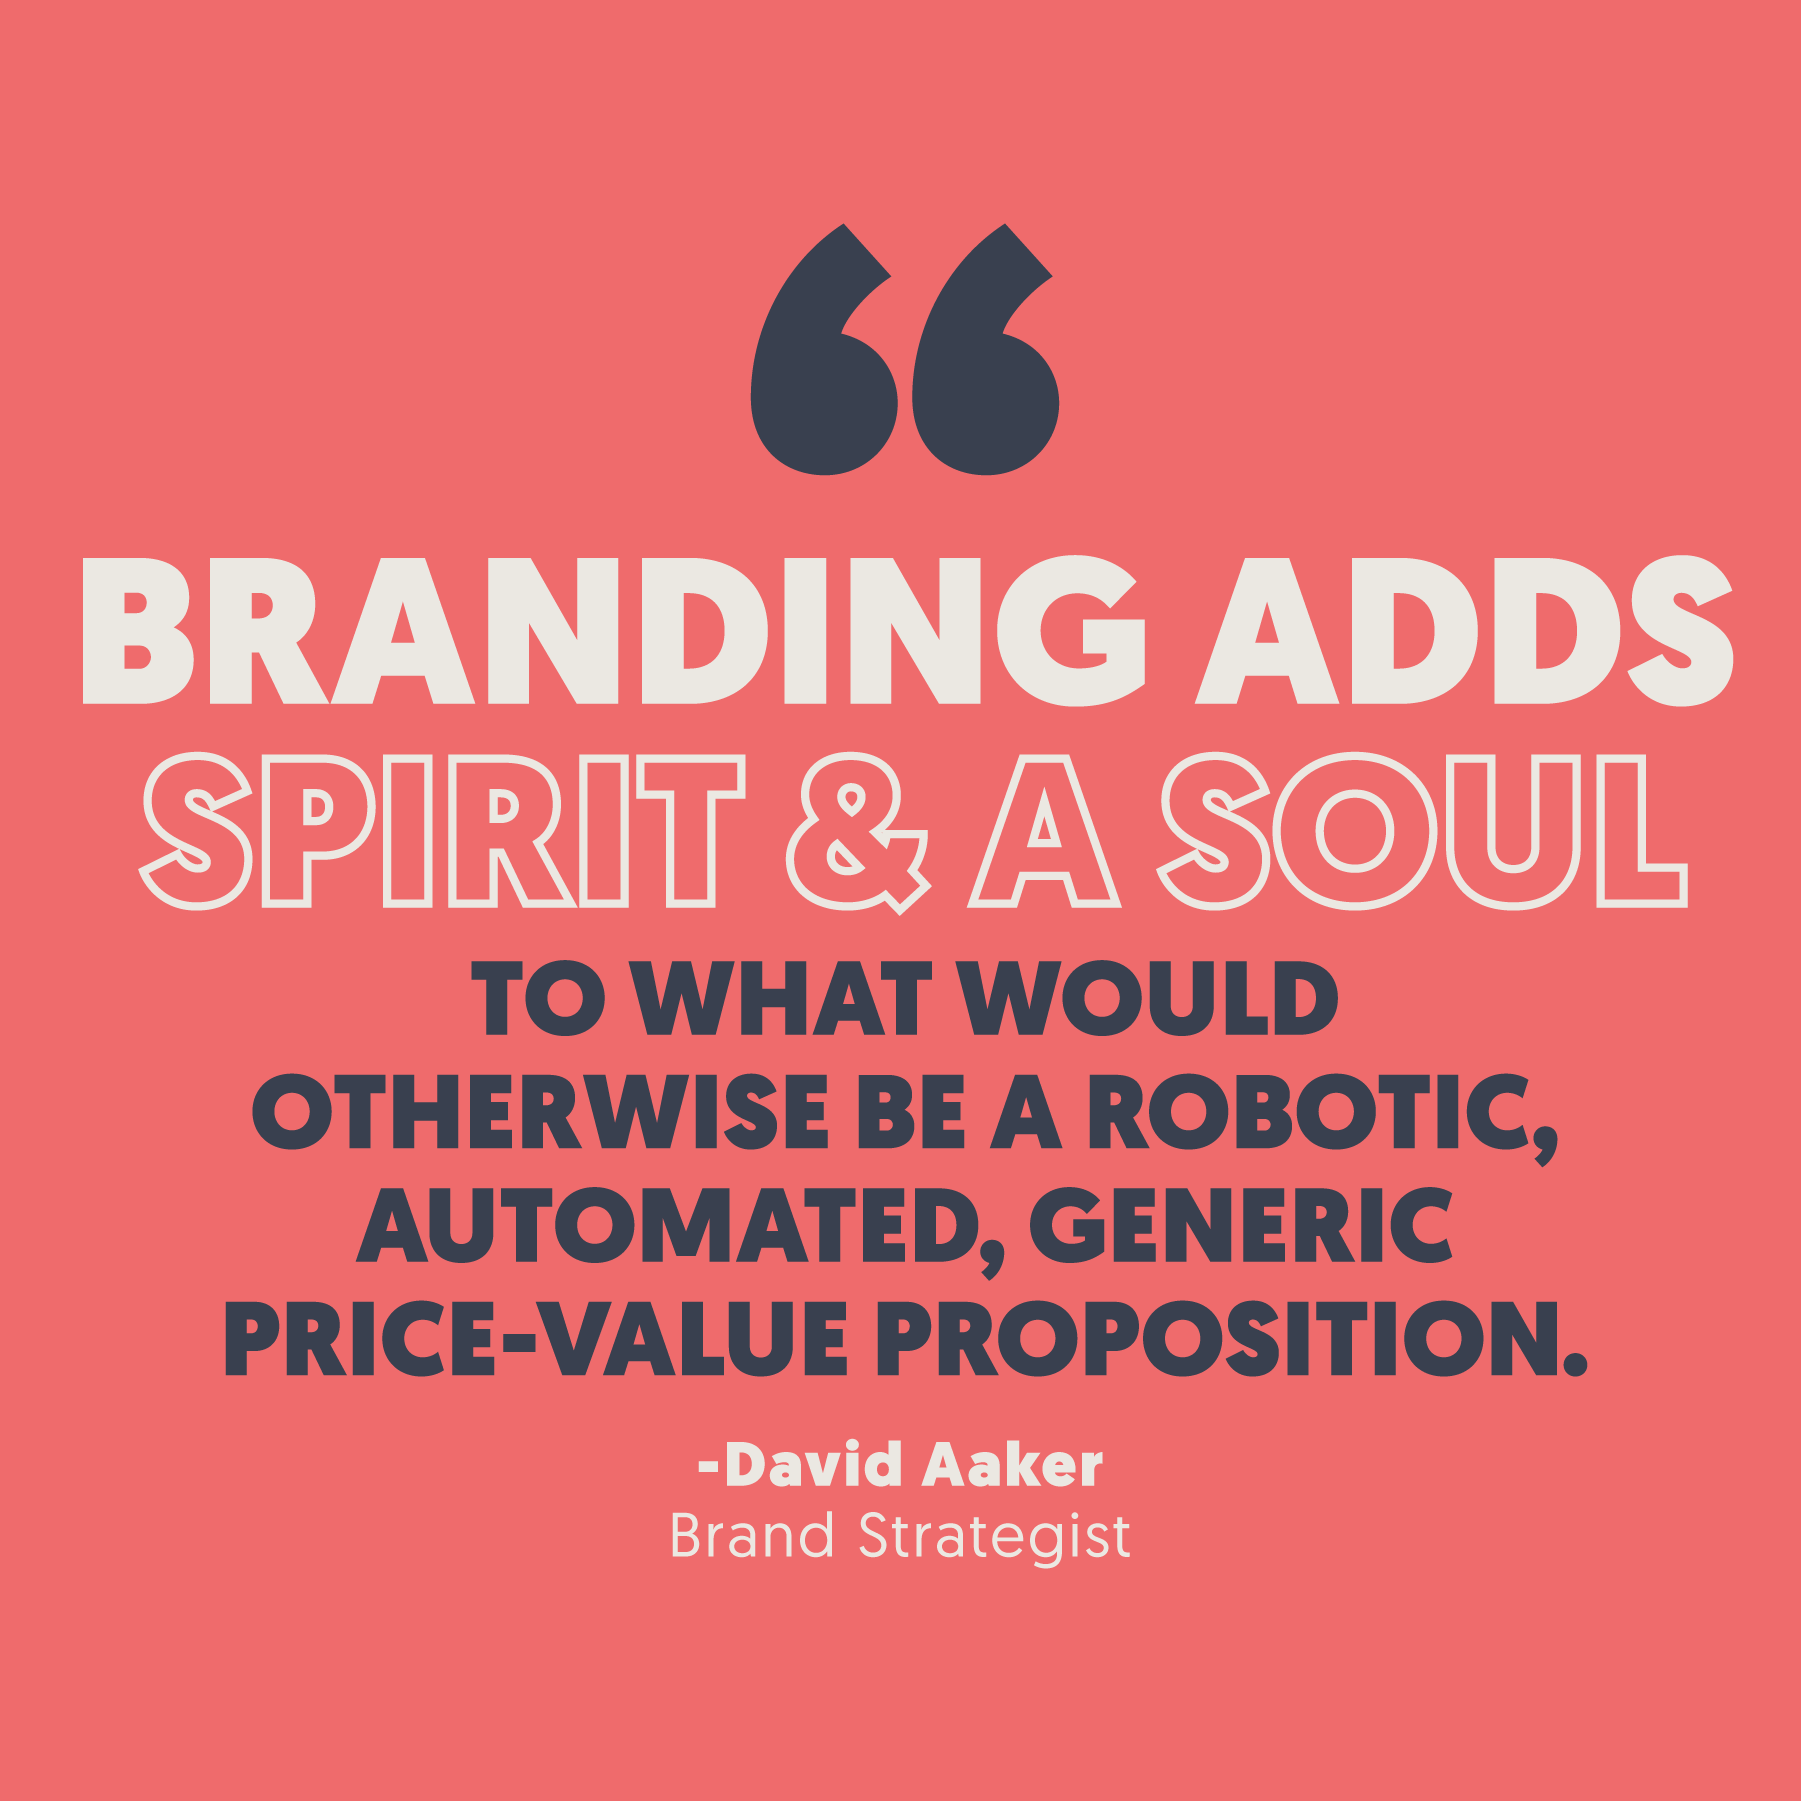 David Aaker Quote: Branding adds spirit and a soul to what would otherwise be a robotic, automated, generic, price-value proposition.